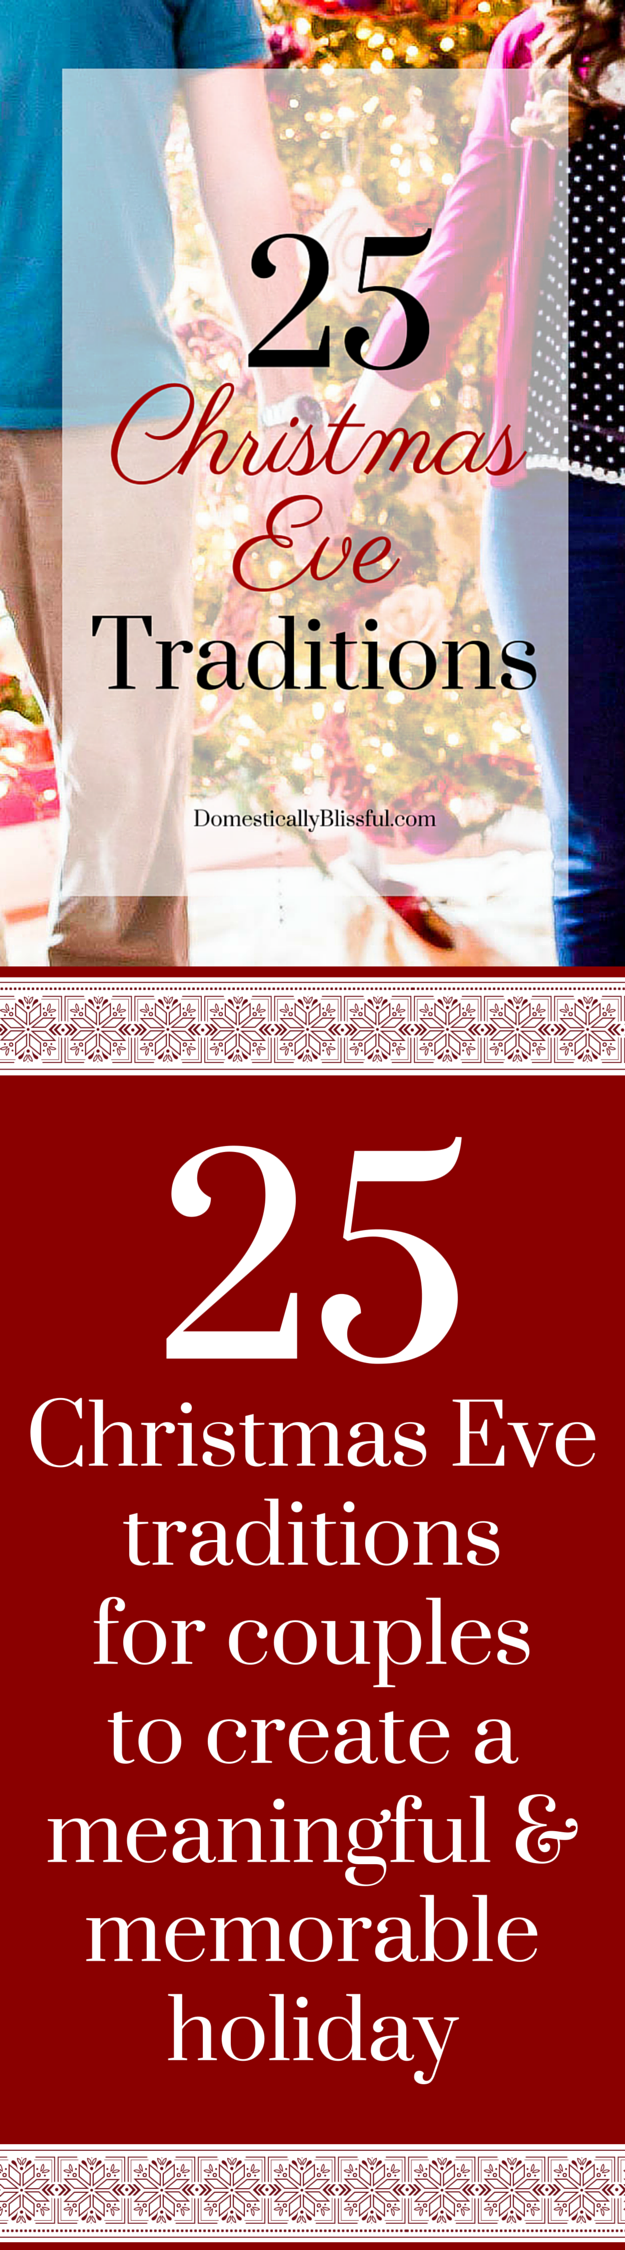 25 Christmas Eve Traditions for Couples | Christmas eve traditions ...